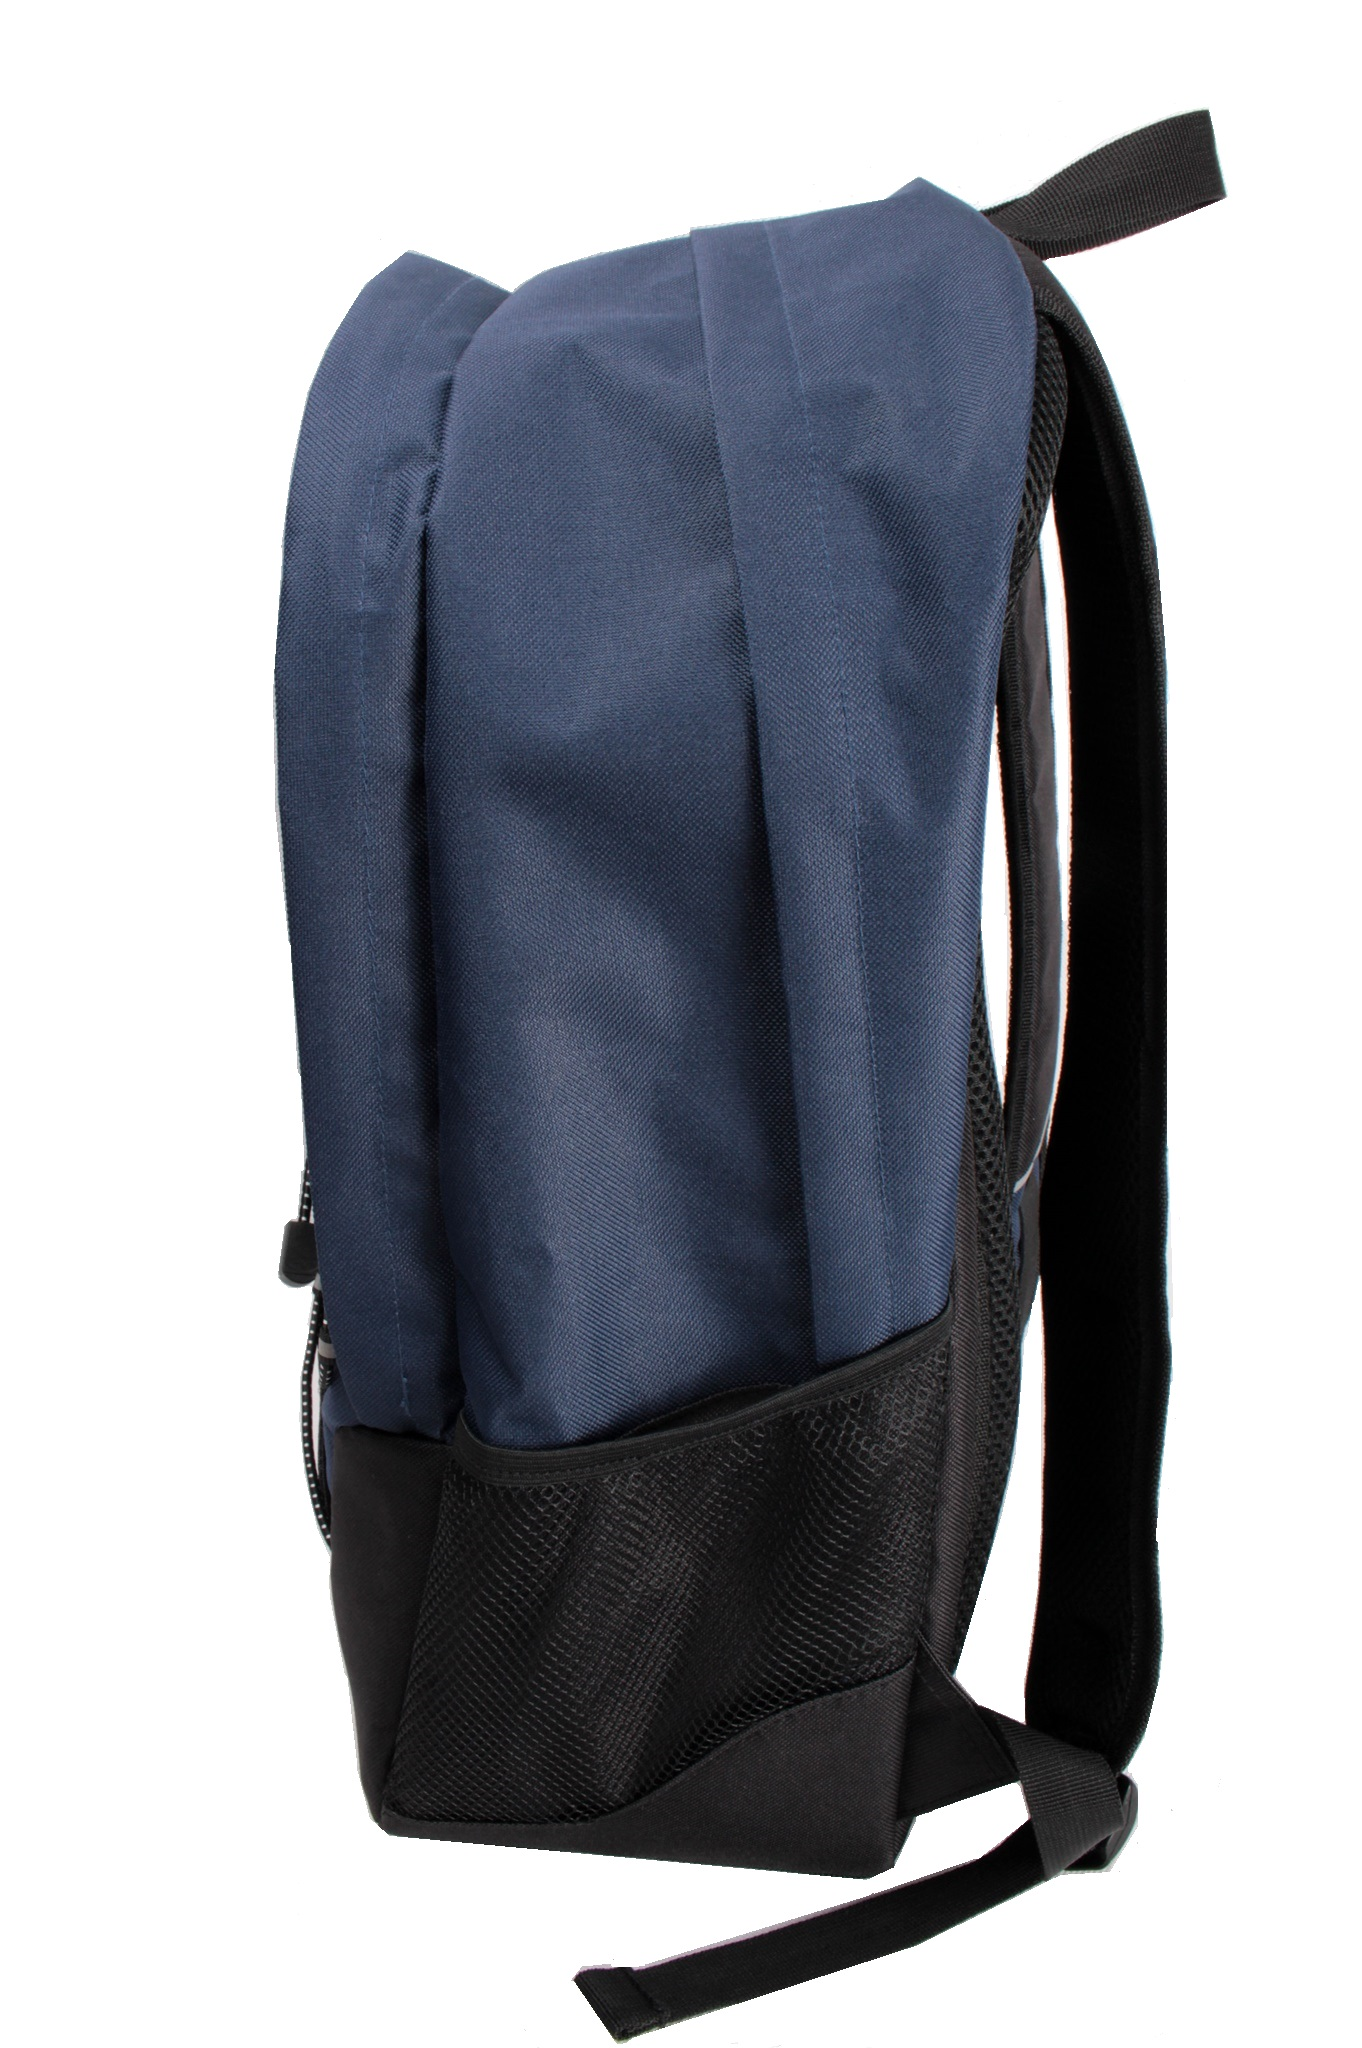 Hard Work Sports Classic Backpack